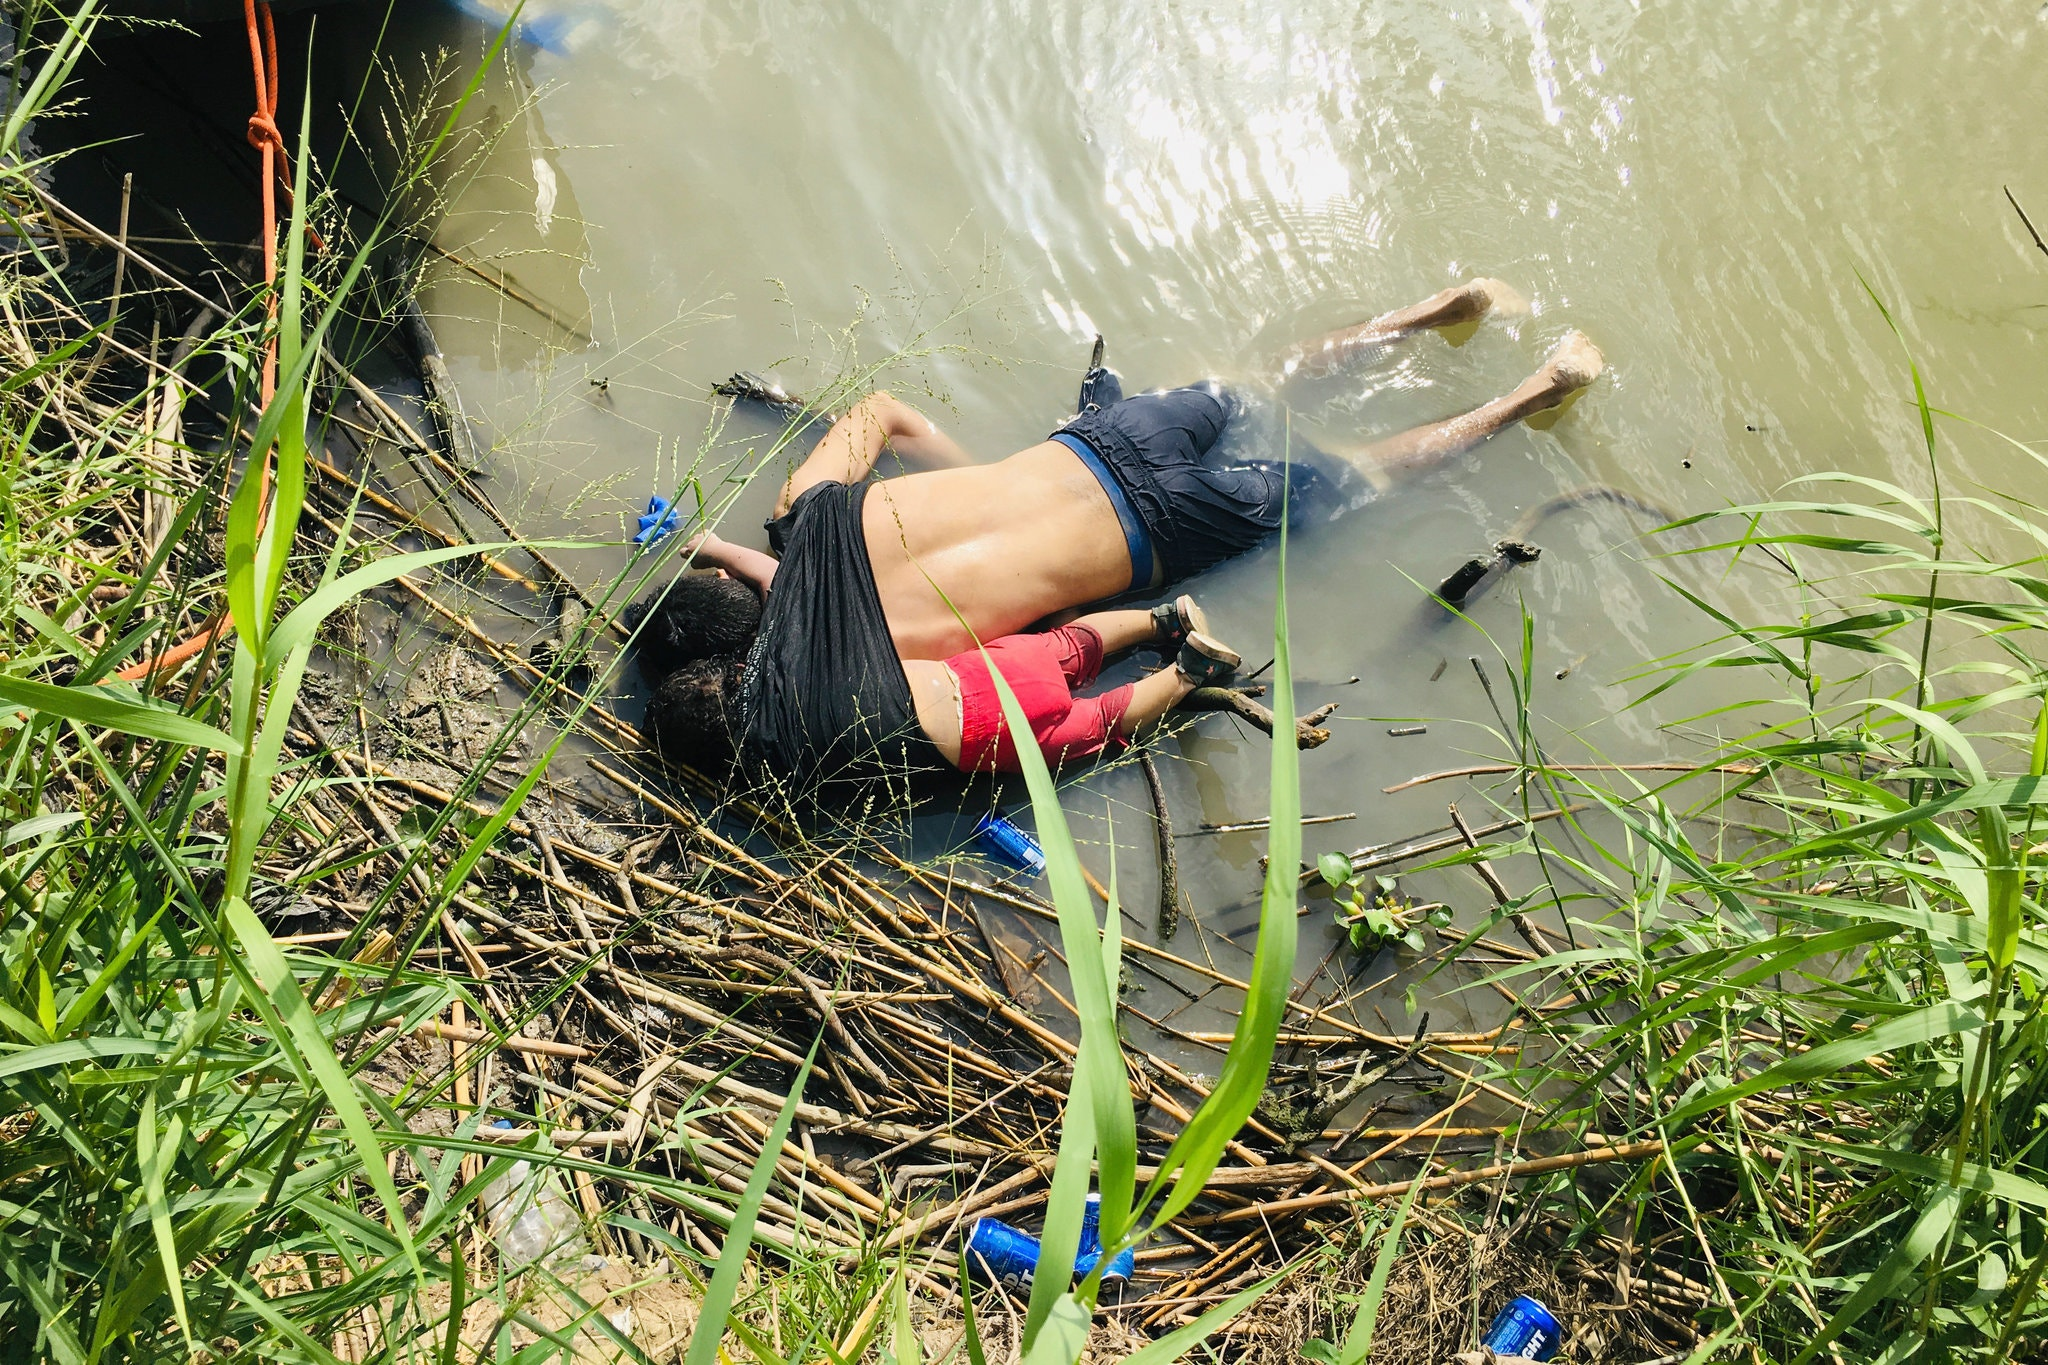 The bodies of Óscar Alberto Martínez Ramírez and his 23-month-old daughter, Valeria, were found in the Rio Grande on Monday. Credit Julia Le Duc/Associated Press